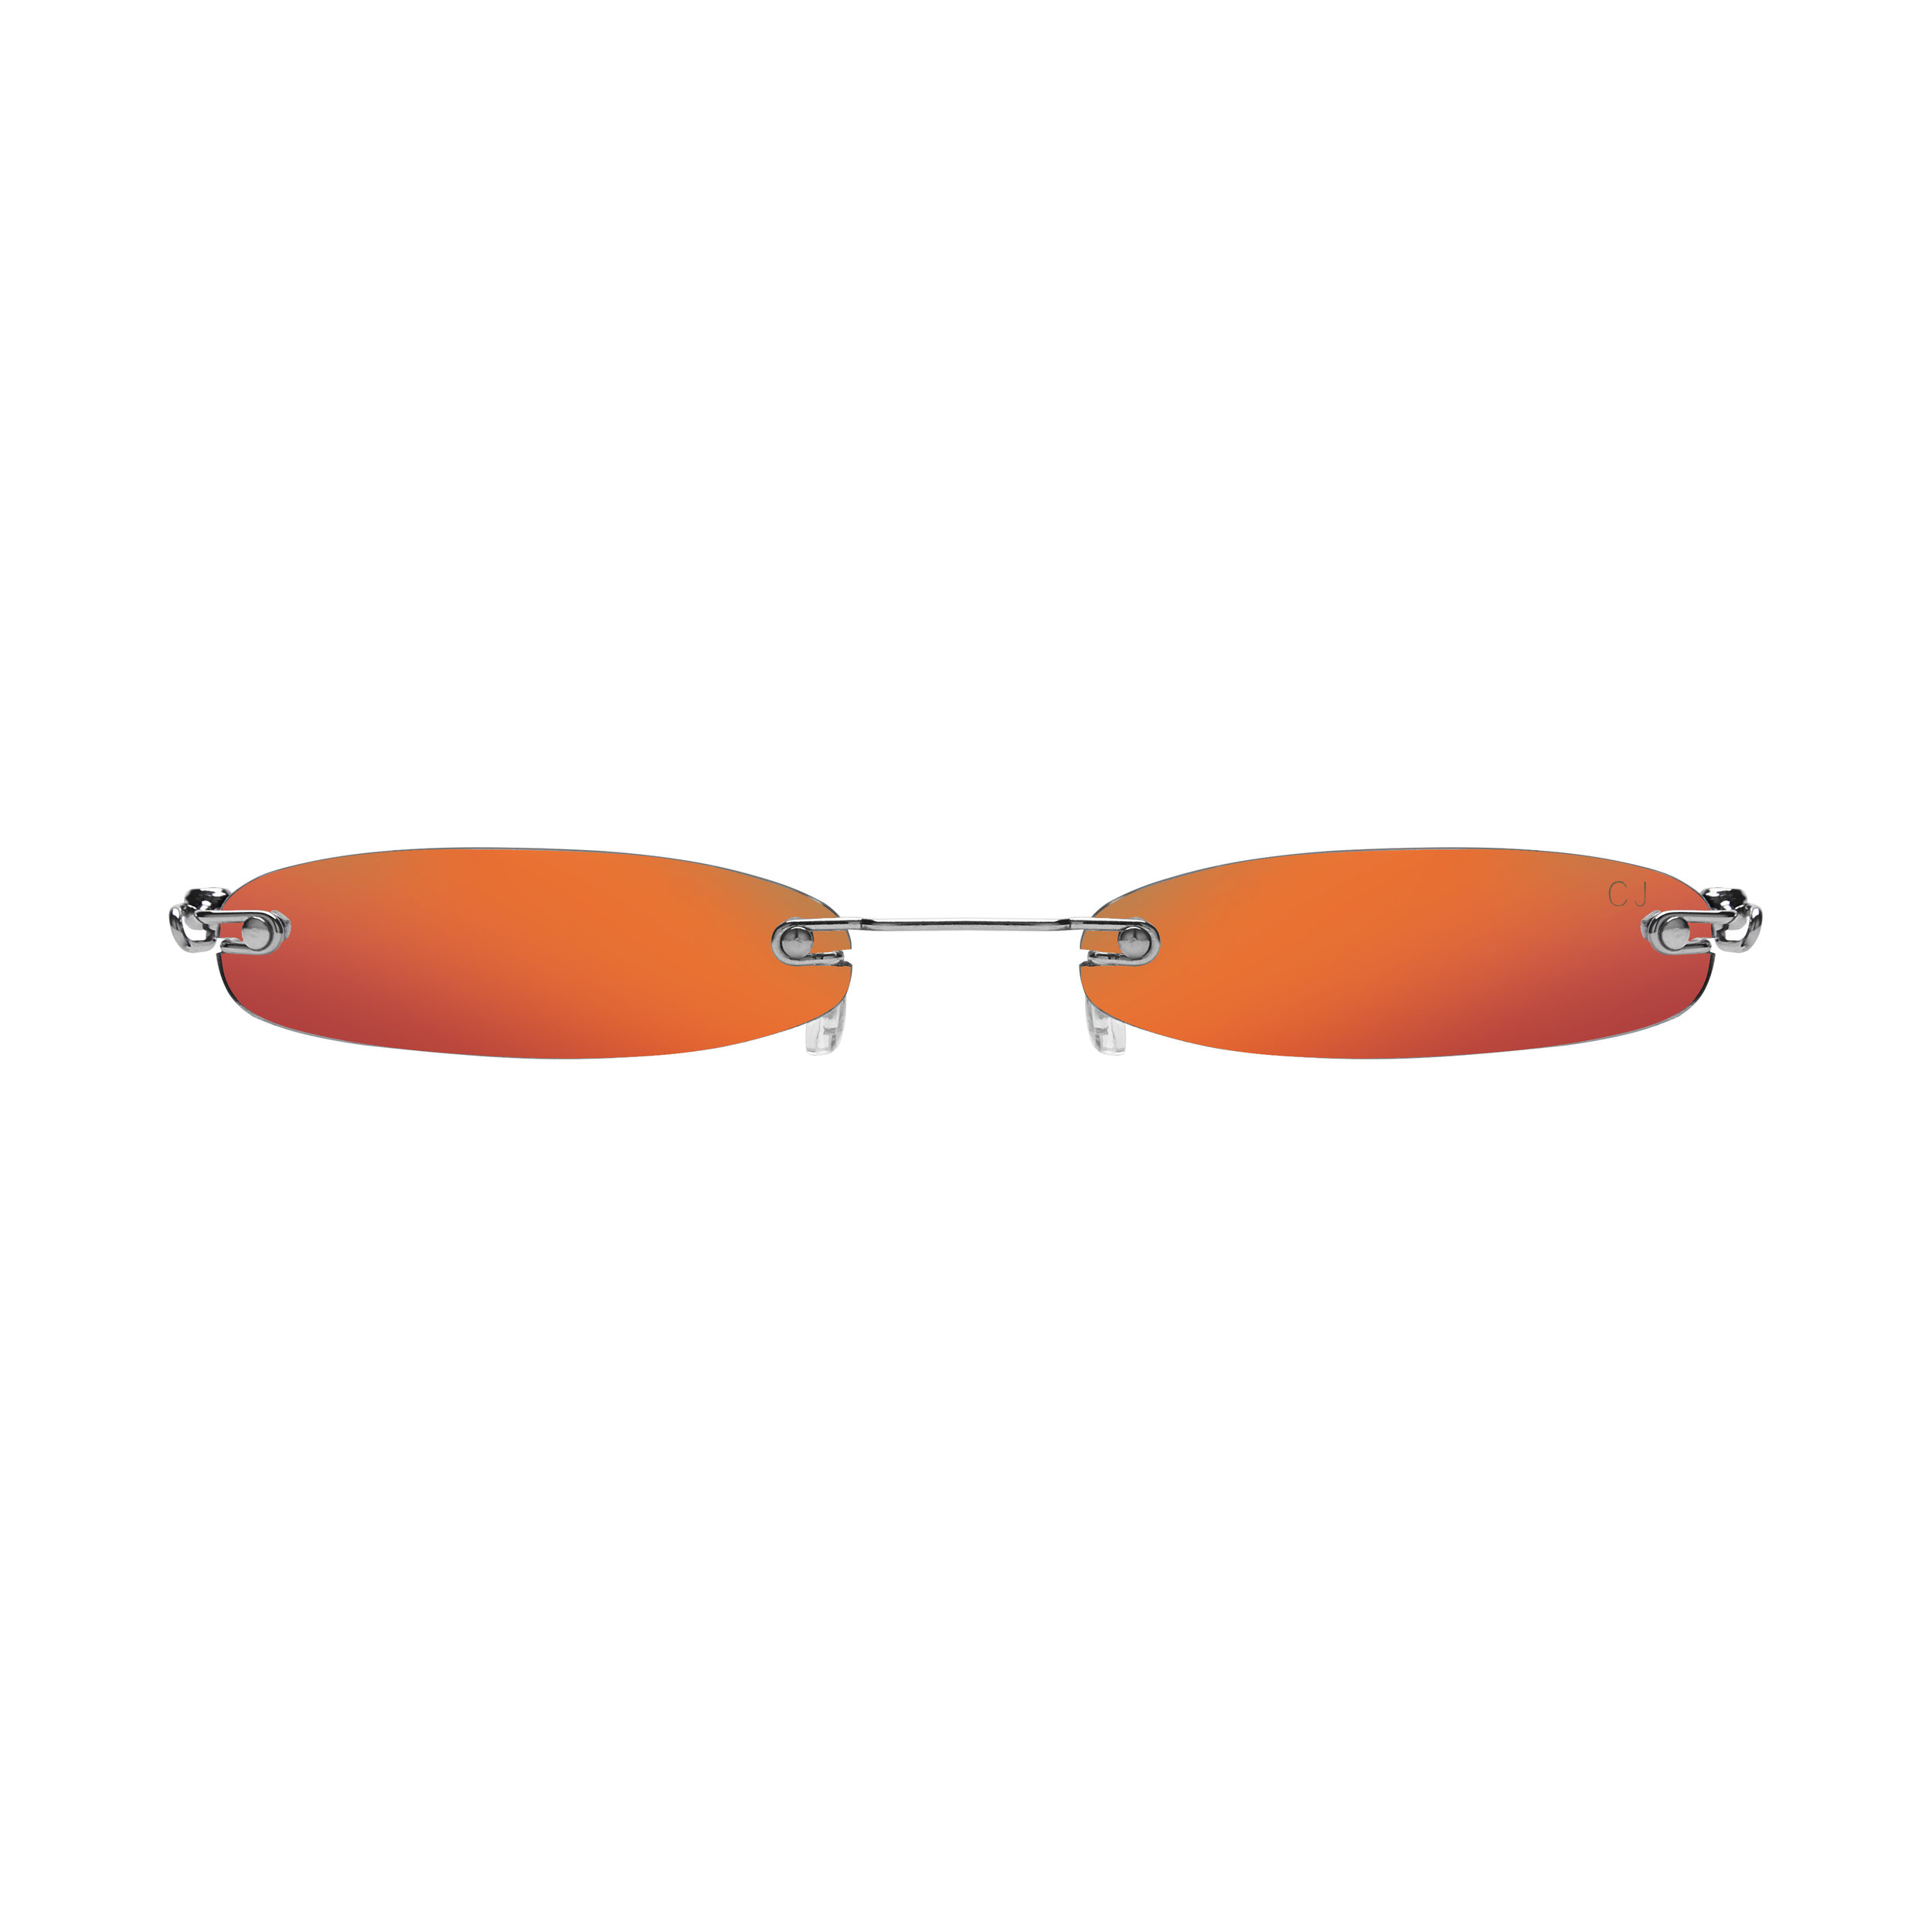 ChristianahJones_Glasses_MirrorOrange_01 (1).jpg